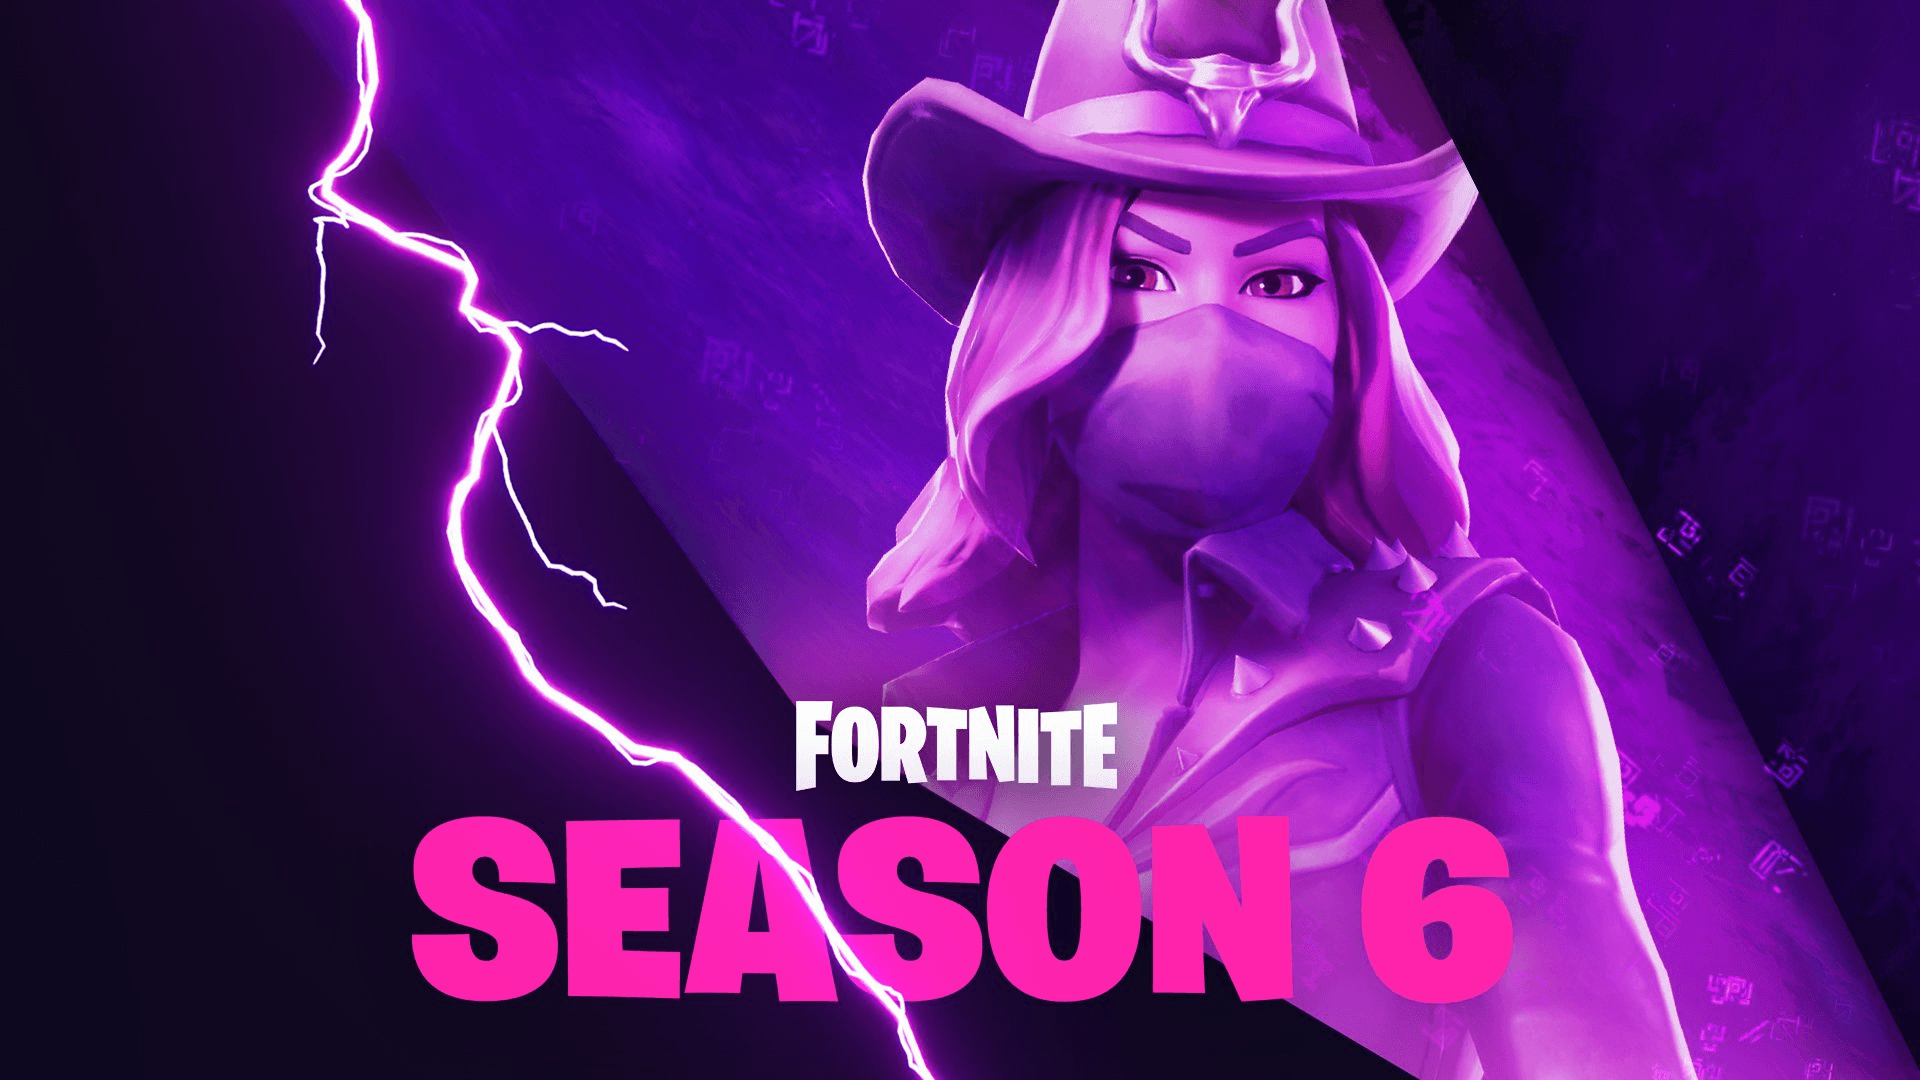 Fortnite Season 6 Teaser 2 - Saddle Up (Cowgirl)